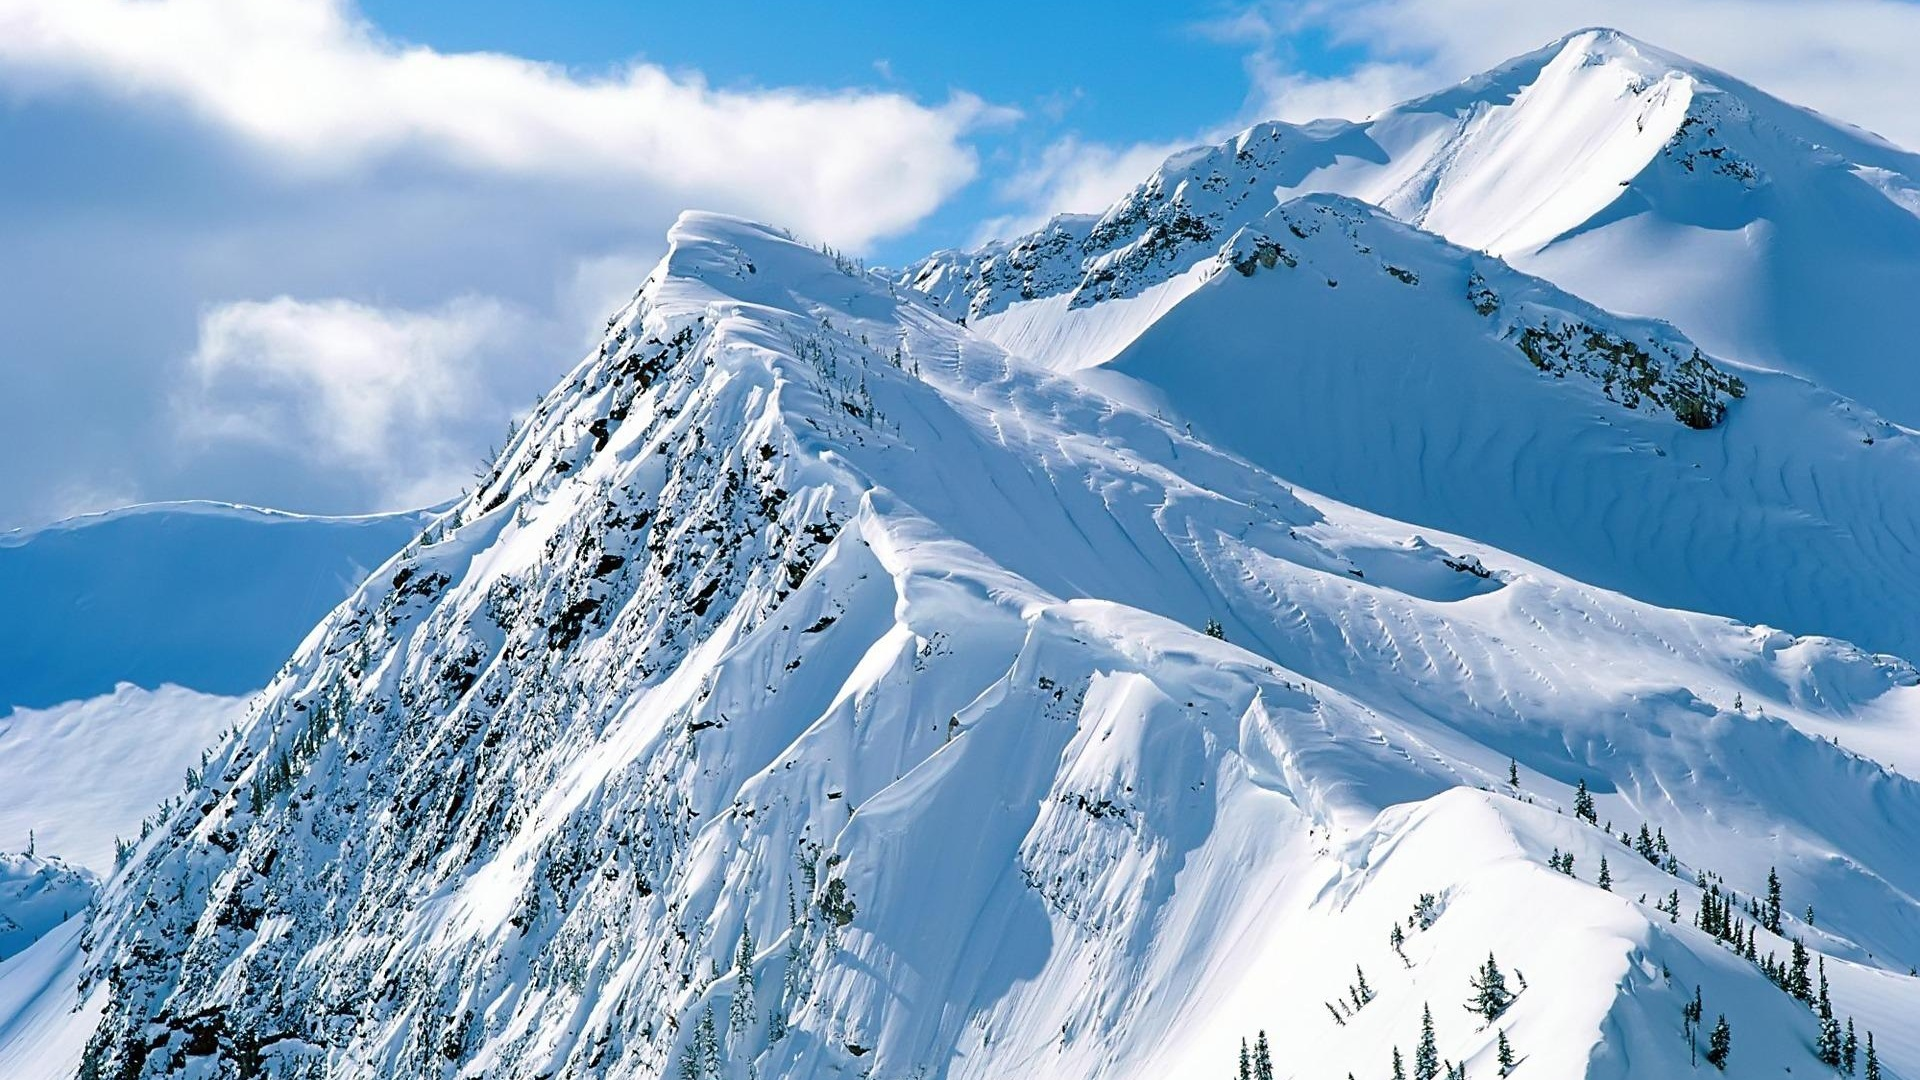 1920x1080 Snow Mountain Desktop PC And Mac Wallpaper